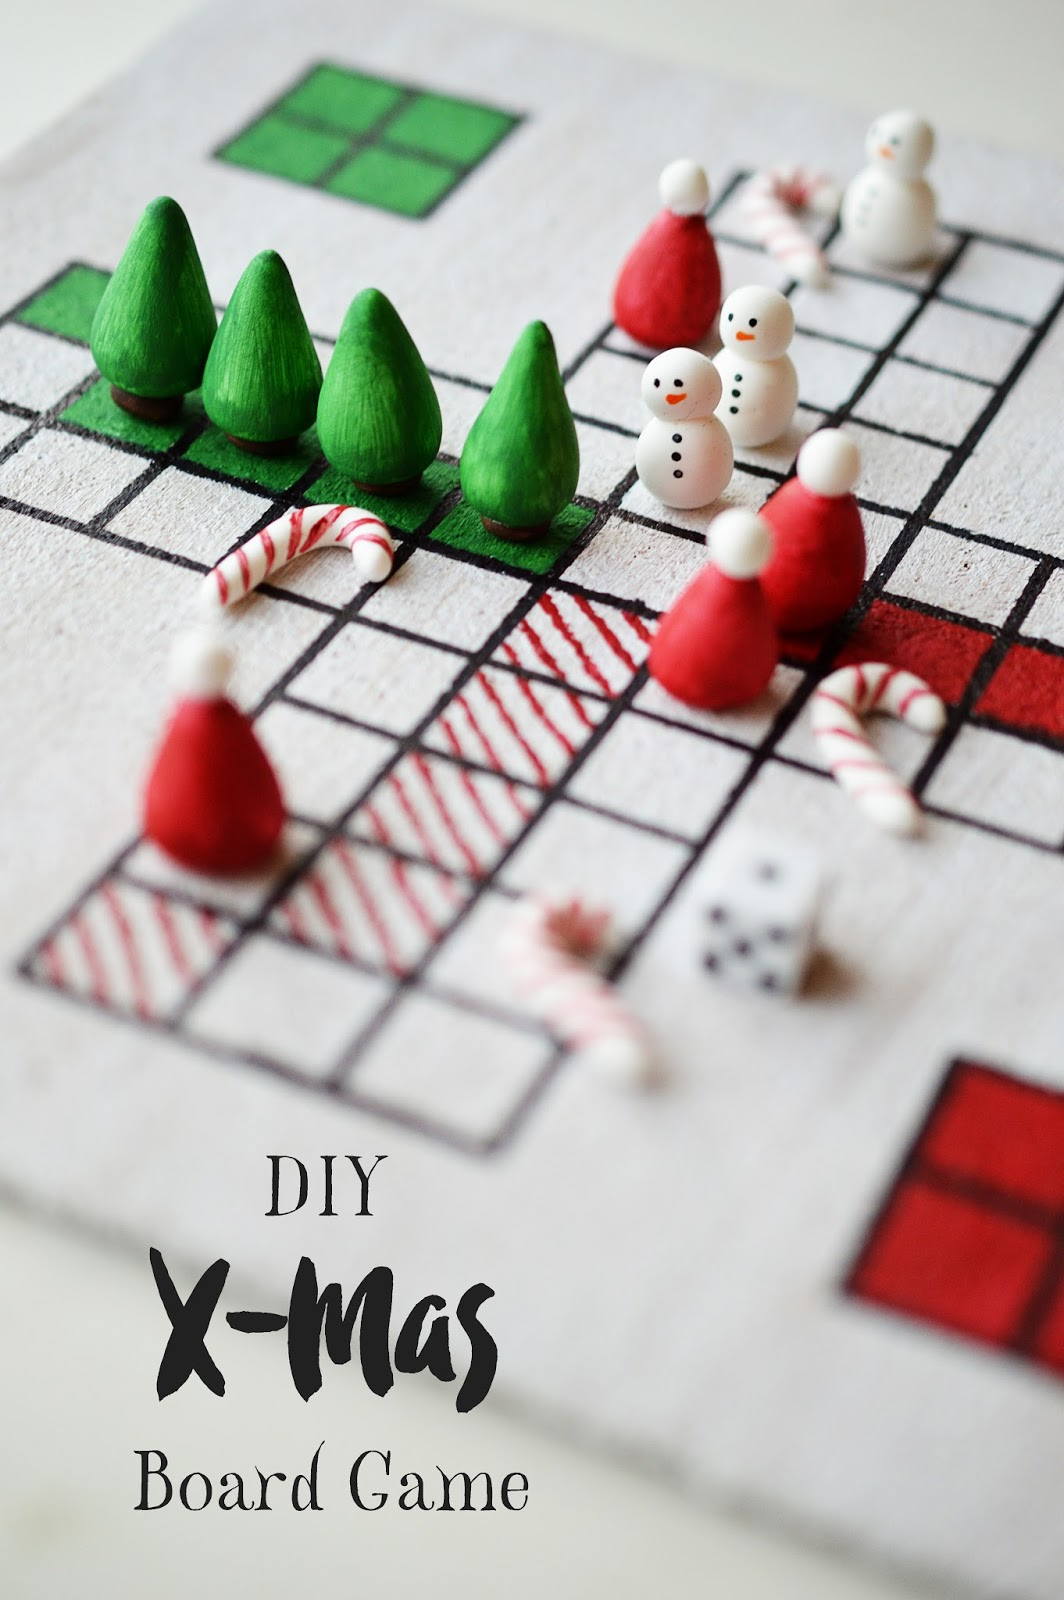 DIY Christmas Board Game tutorial